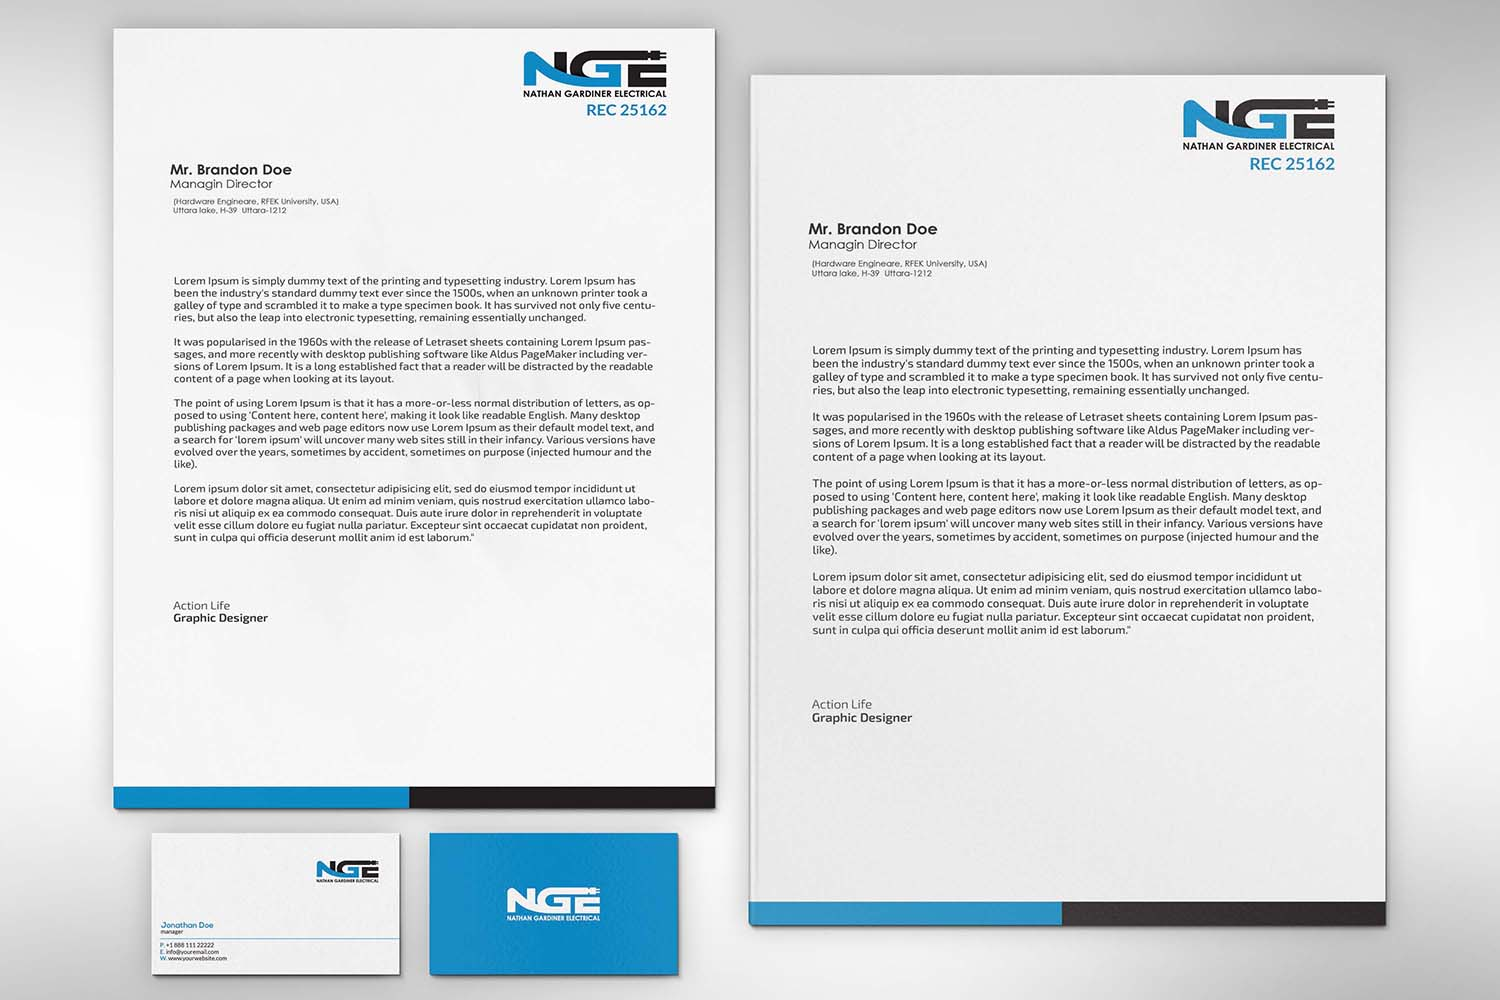 Modern professional electrical letterhead design for nathan letterhead design by zillurrahman800 for nathan gardiner electrical design 7695342 altavistaventures Image collections